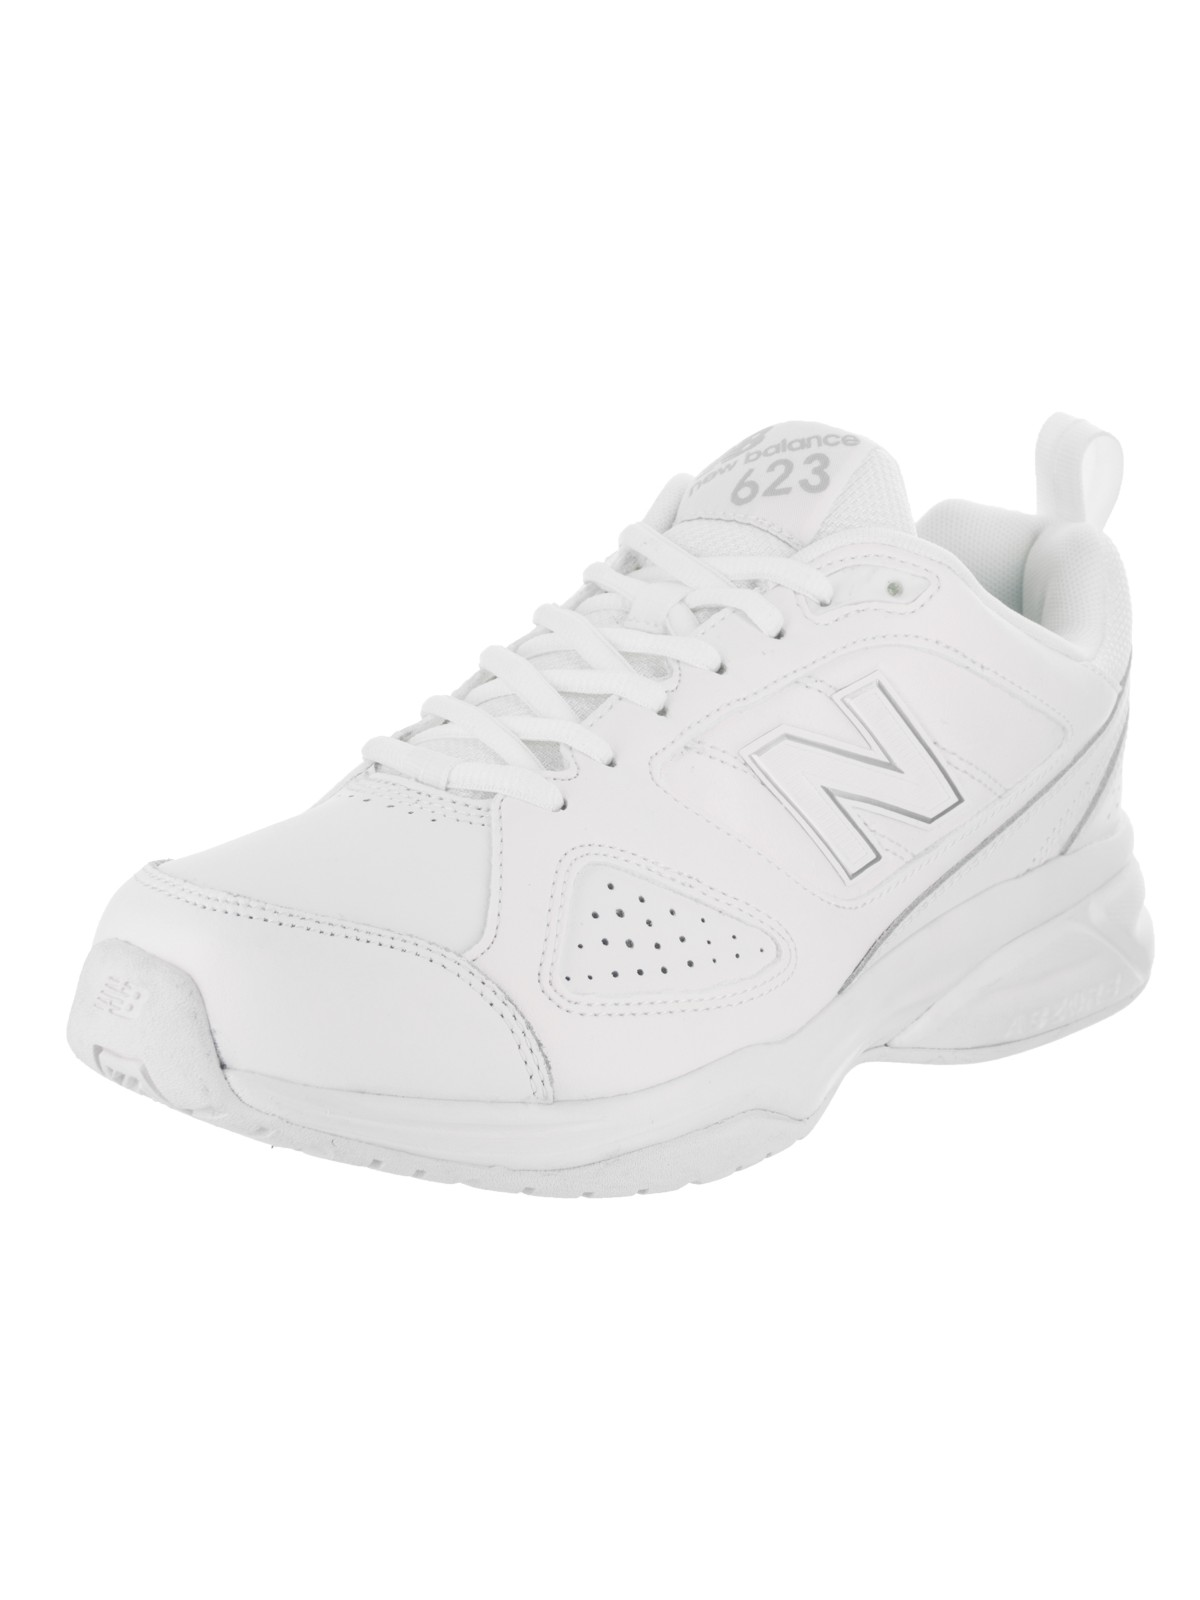 New Balance MX623 Men 4E Round Toe Leather White Cross Training by New Balance